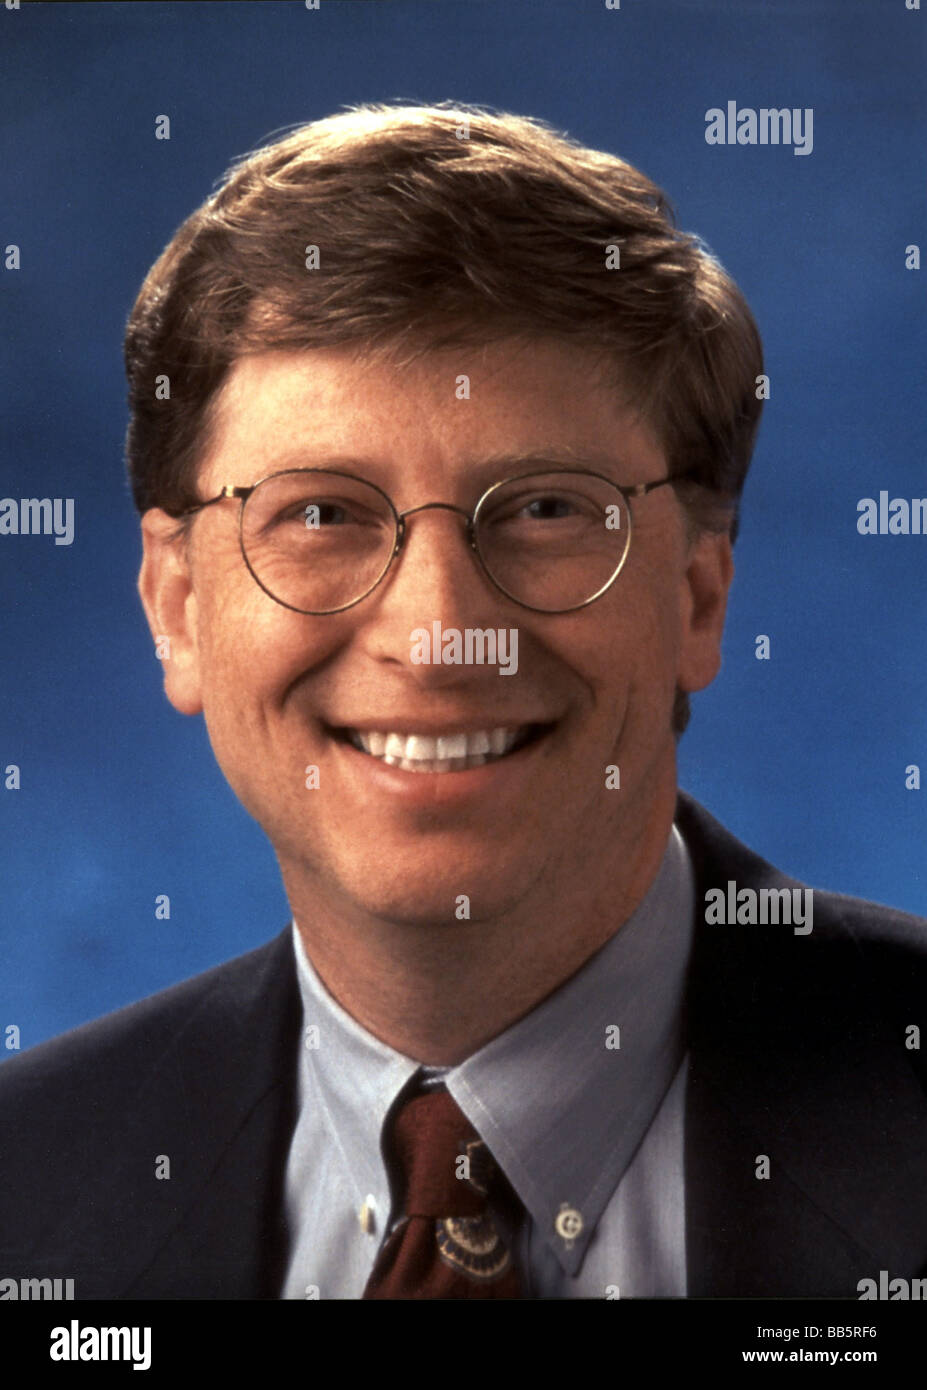 a biography of william henry gate iii In-depth executive profile of microsoft corporation, founder and technology advisor, william henry (bill) gates, iii.